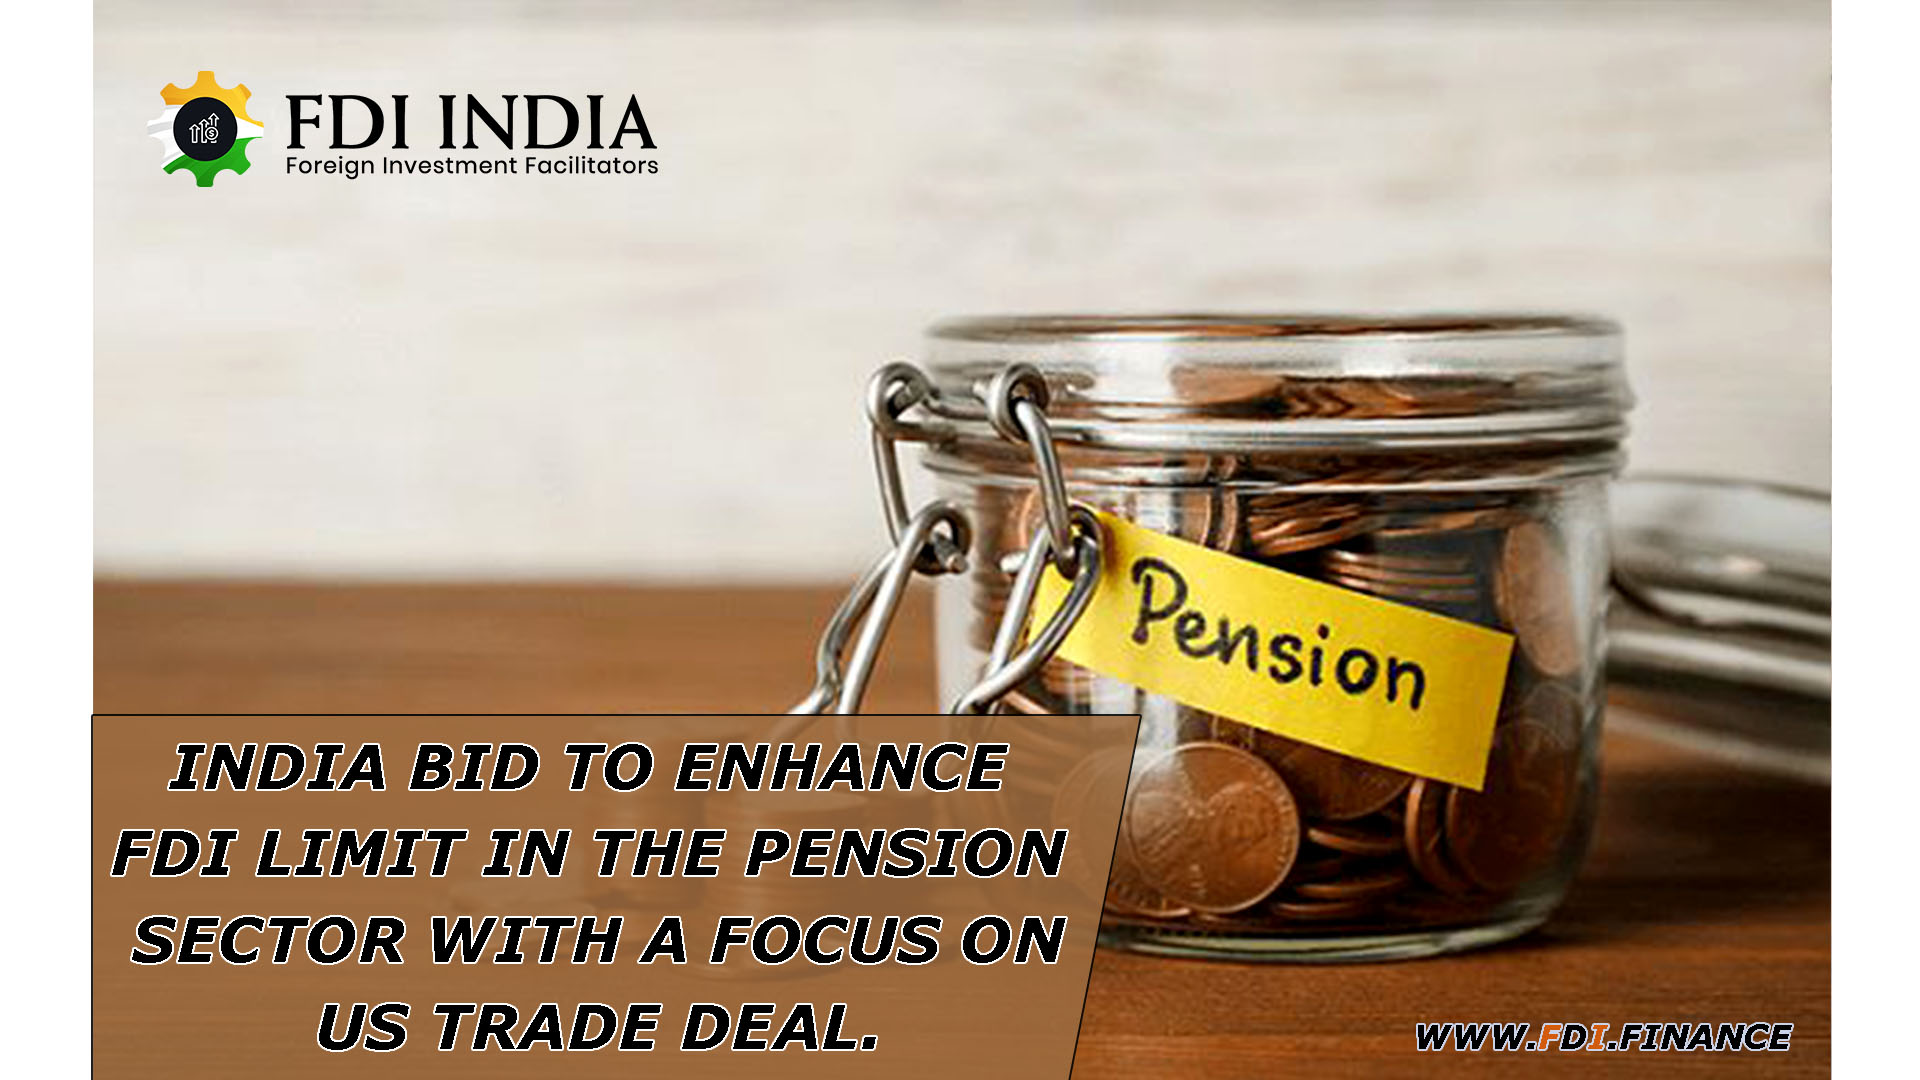 India Bid To Enhance FDI Limit In The Pension Sector With A Focus On US Trade Deal.